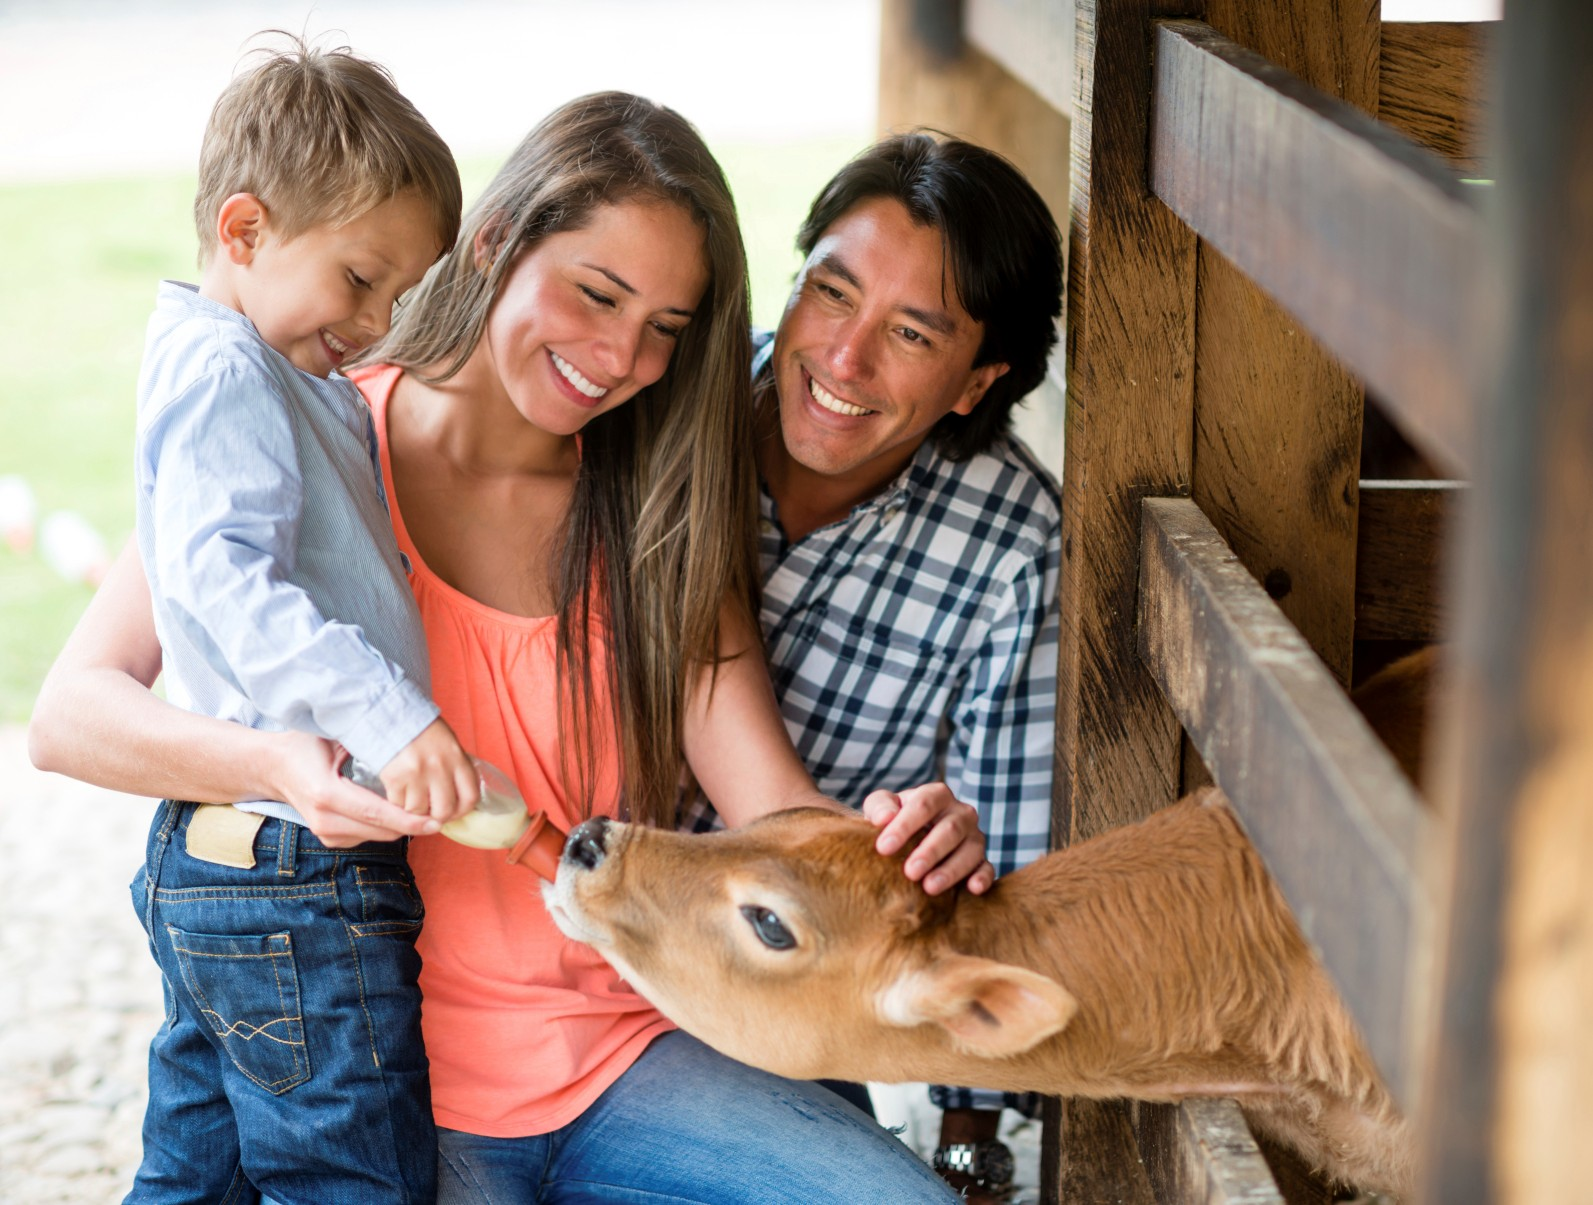 Family feeding cow